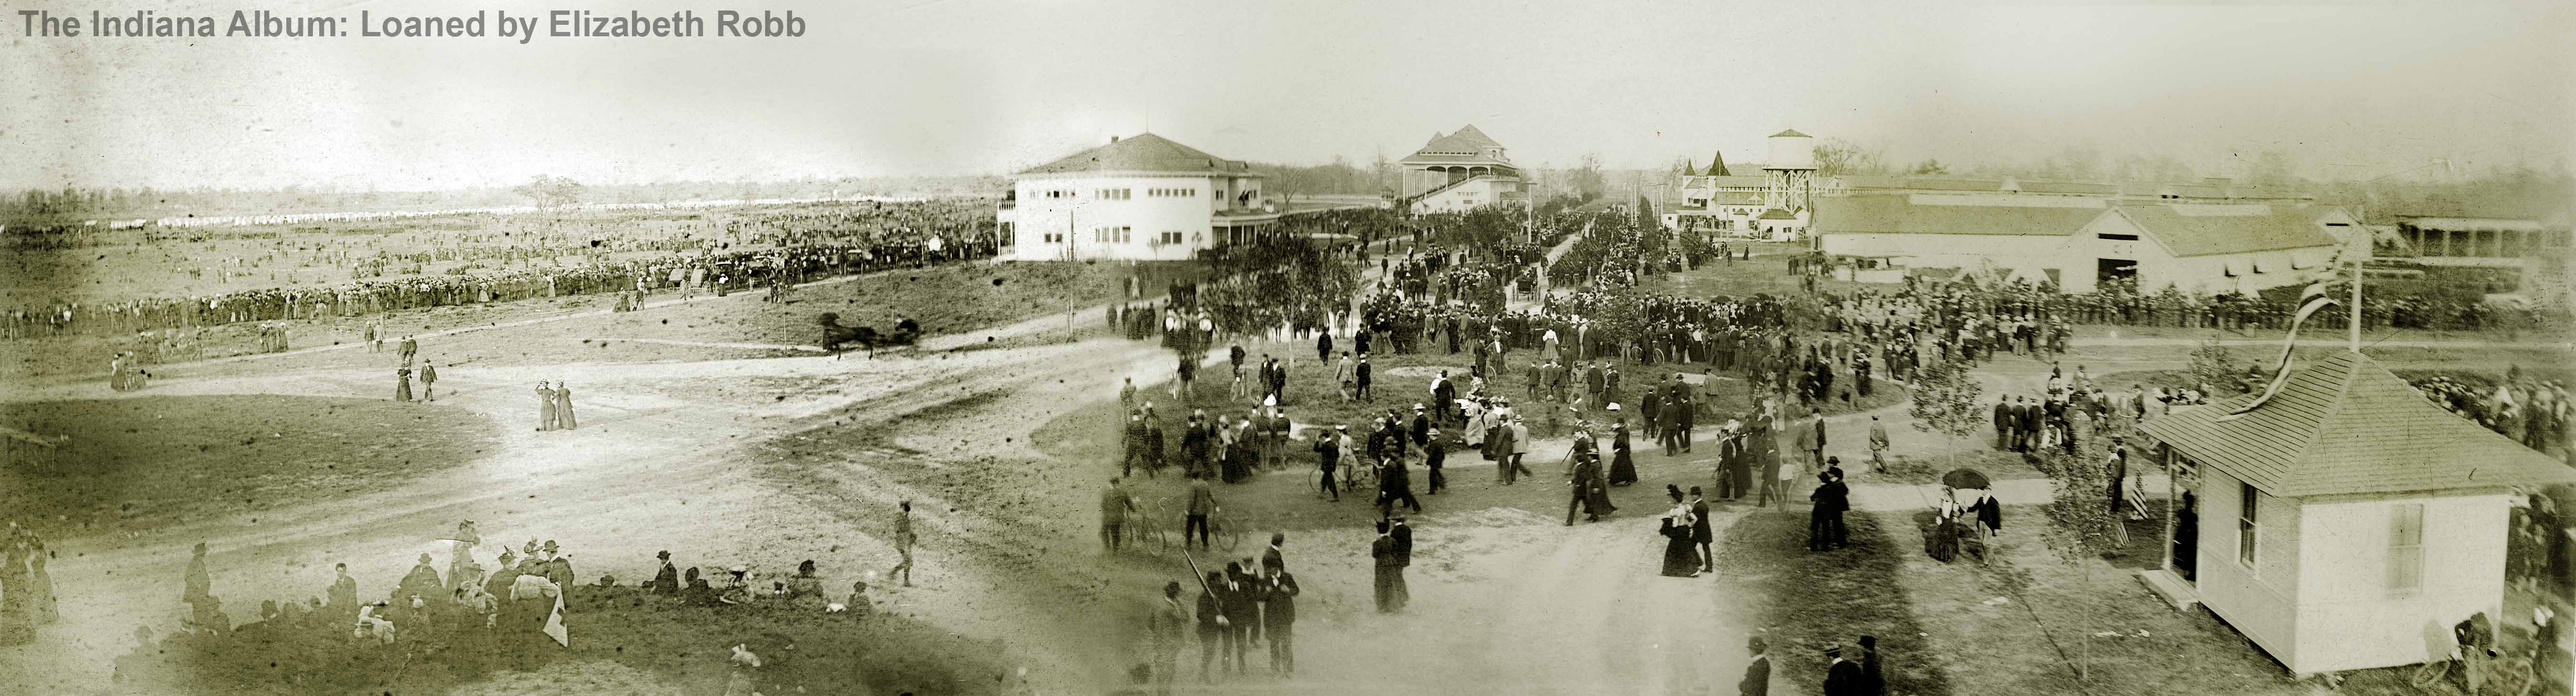 Indianapolis Then and Now: Indiana State Fair, 1202 E. 38th Street